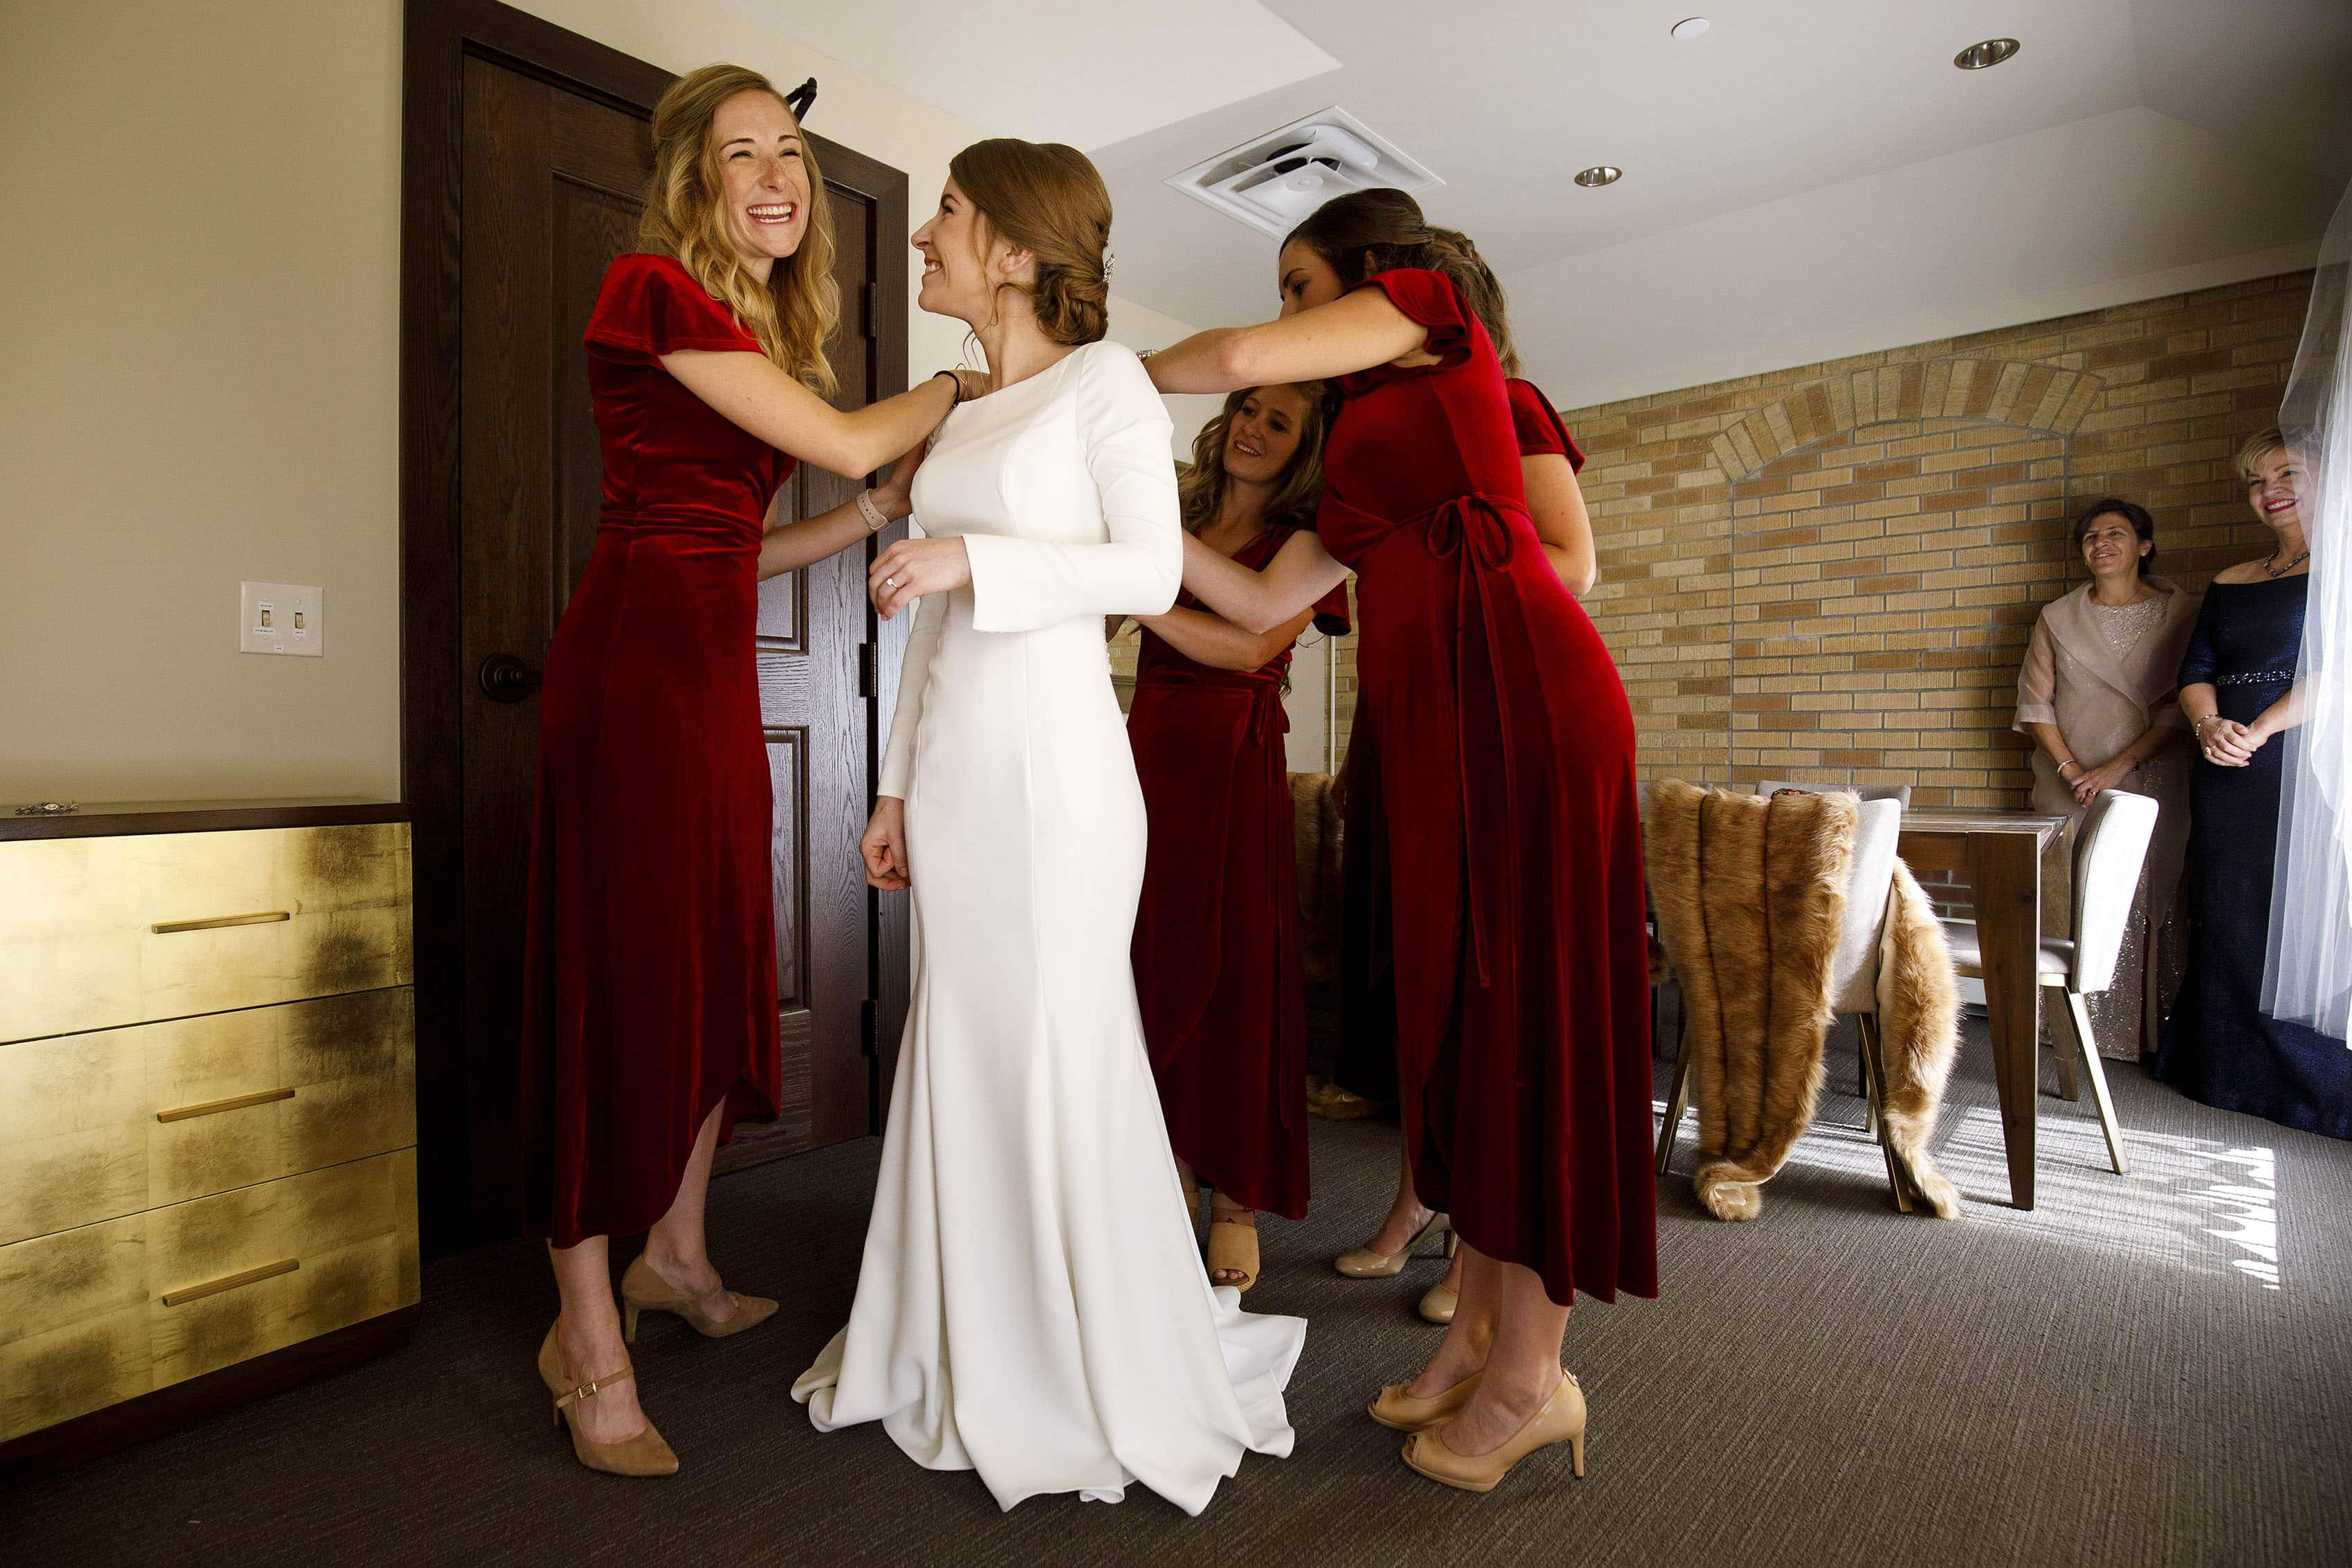 The bride gets help putting on her dress in the bridal suite at Our Lady of Lourdes